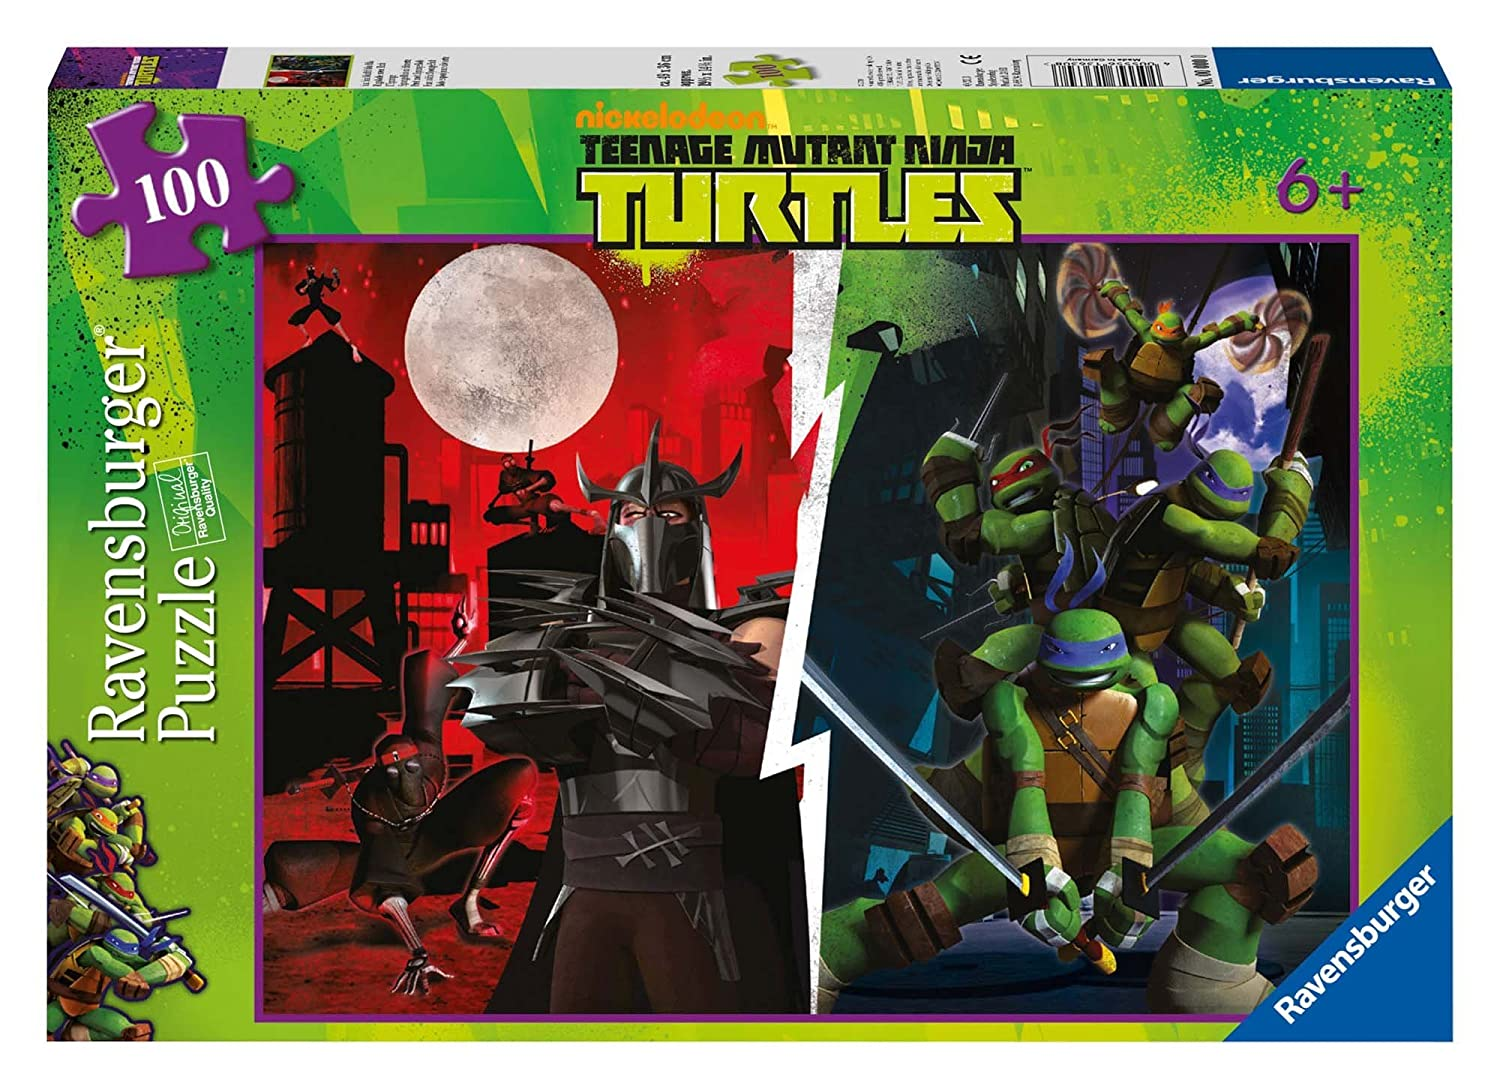 Amazon.com: Ravensburger teenage mutant ninja turtles (100 ...